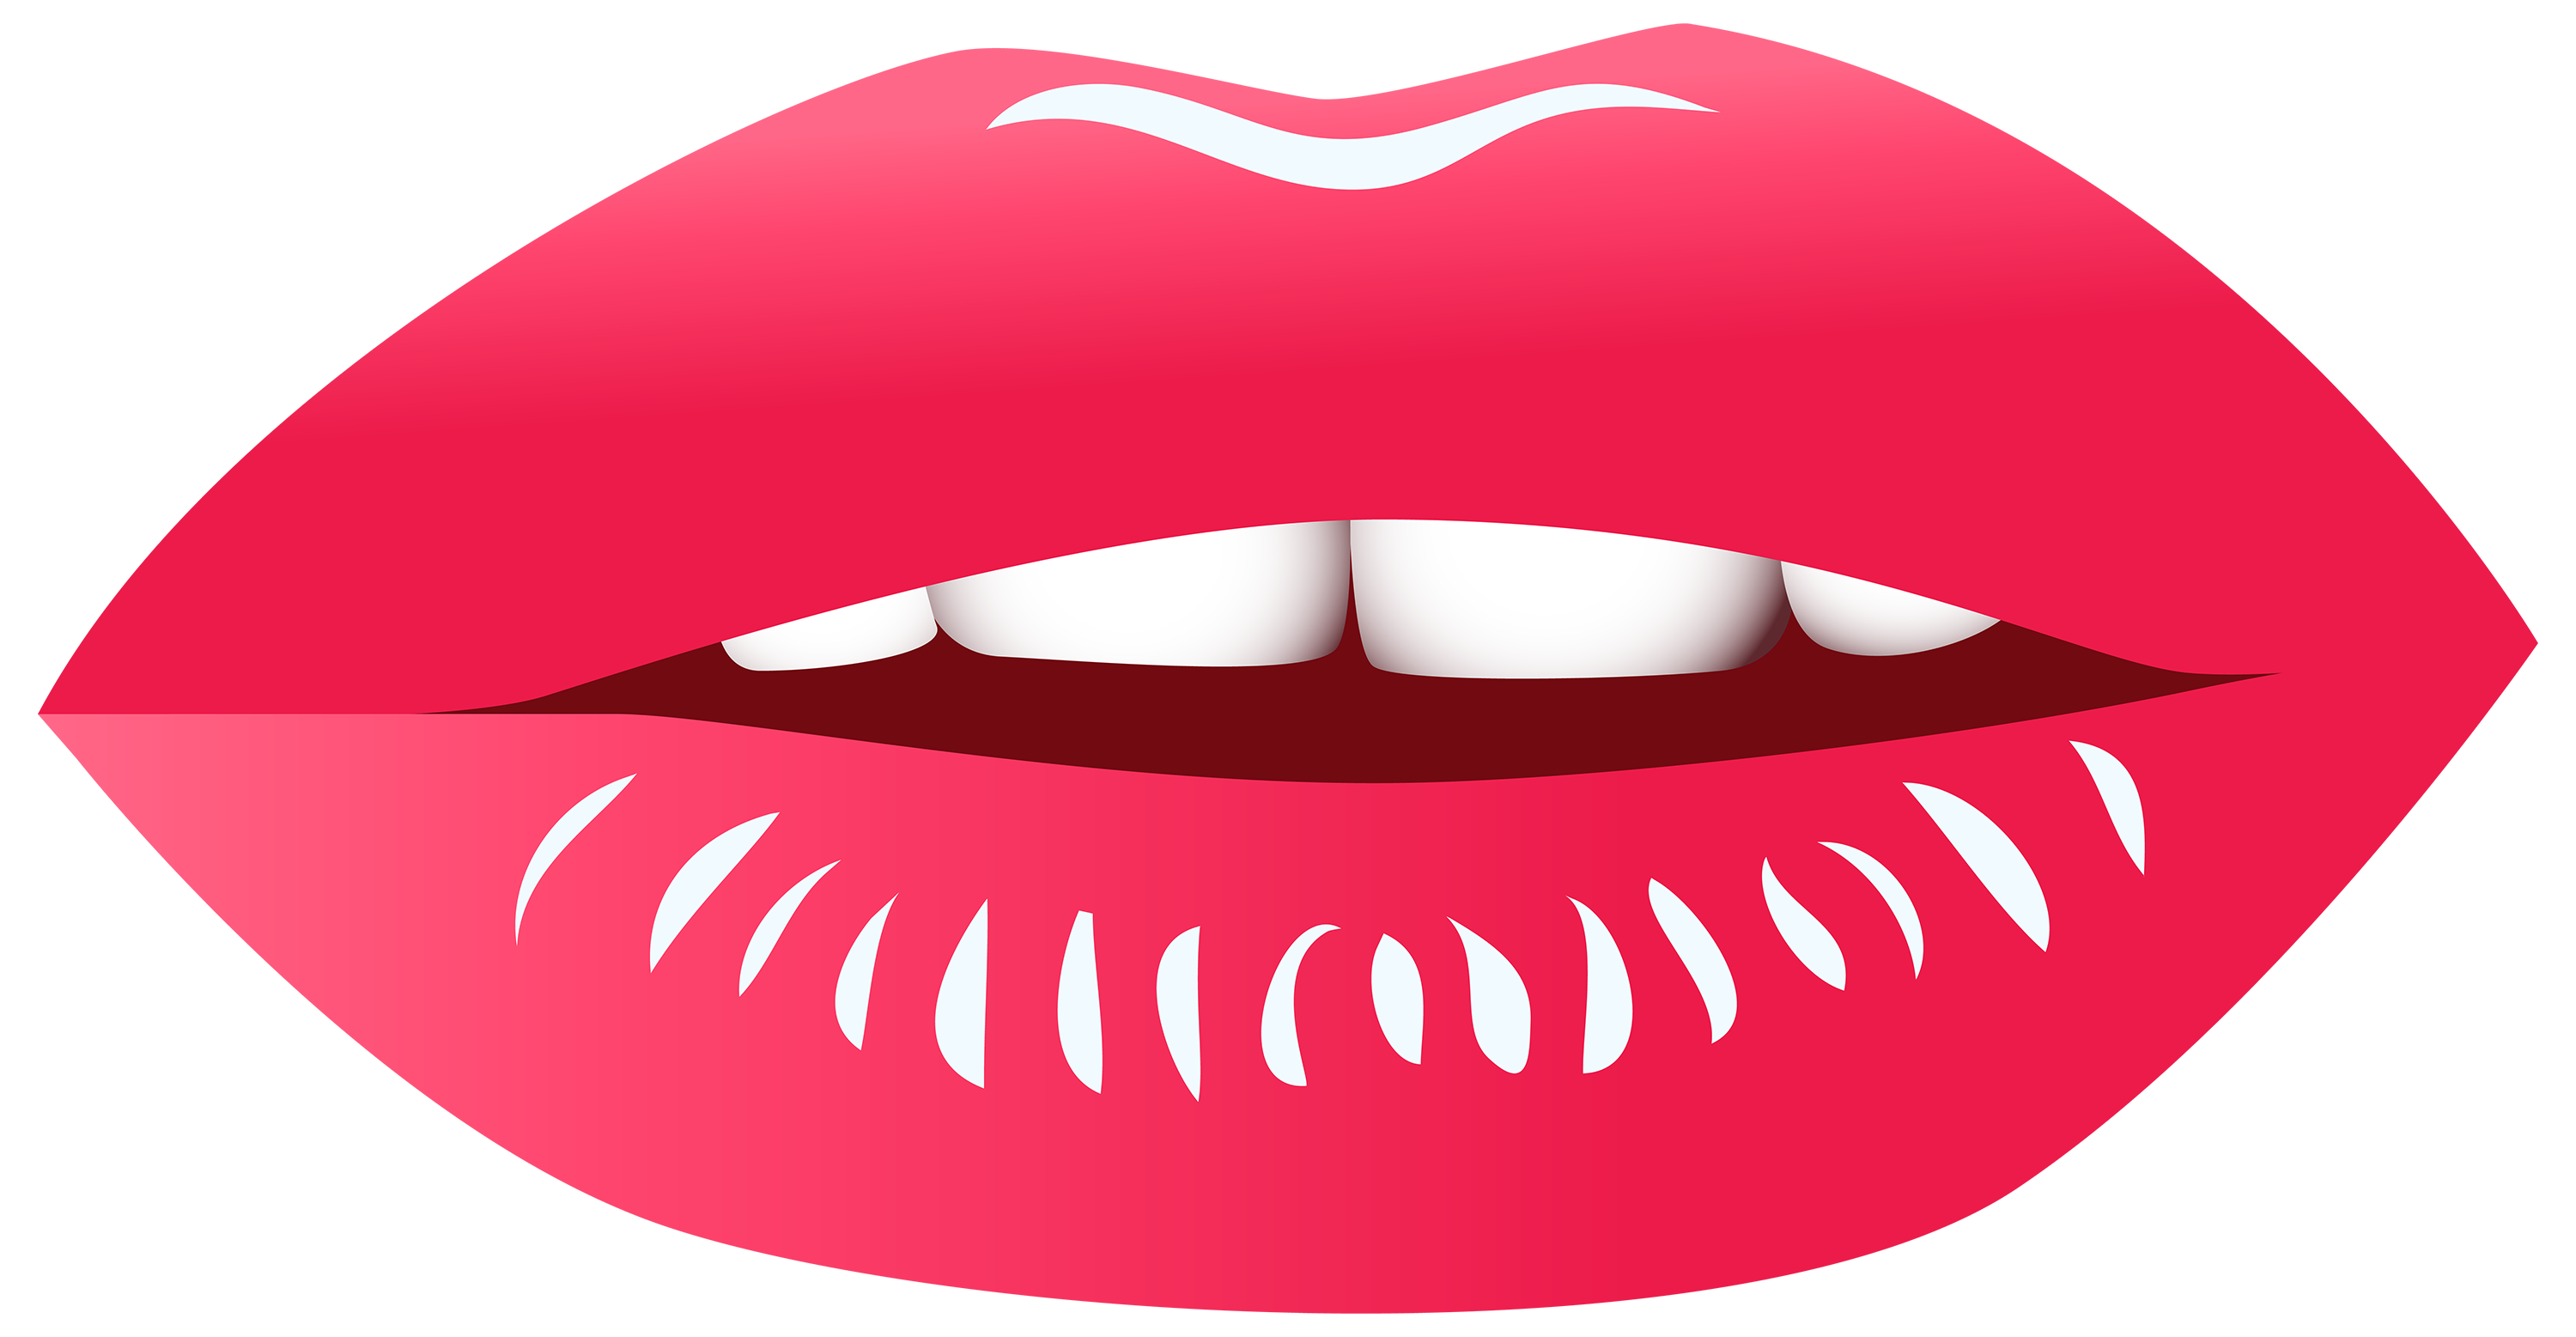 Png best web. Moving clipart mouth